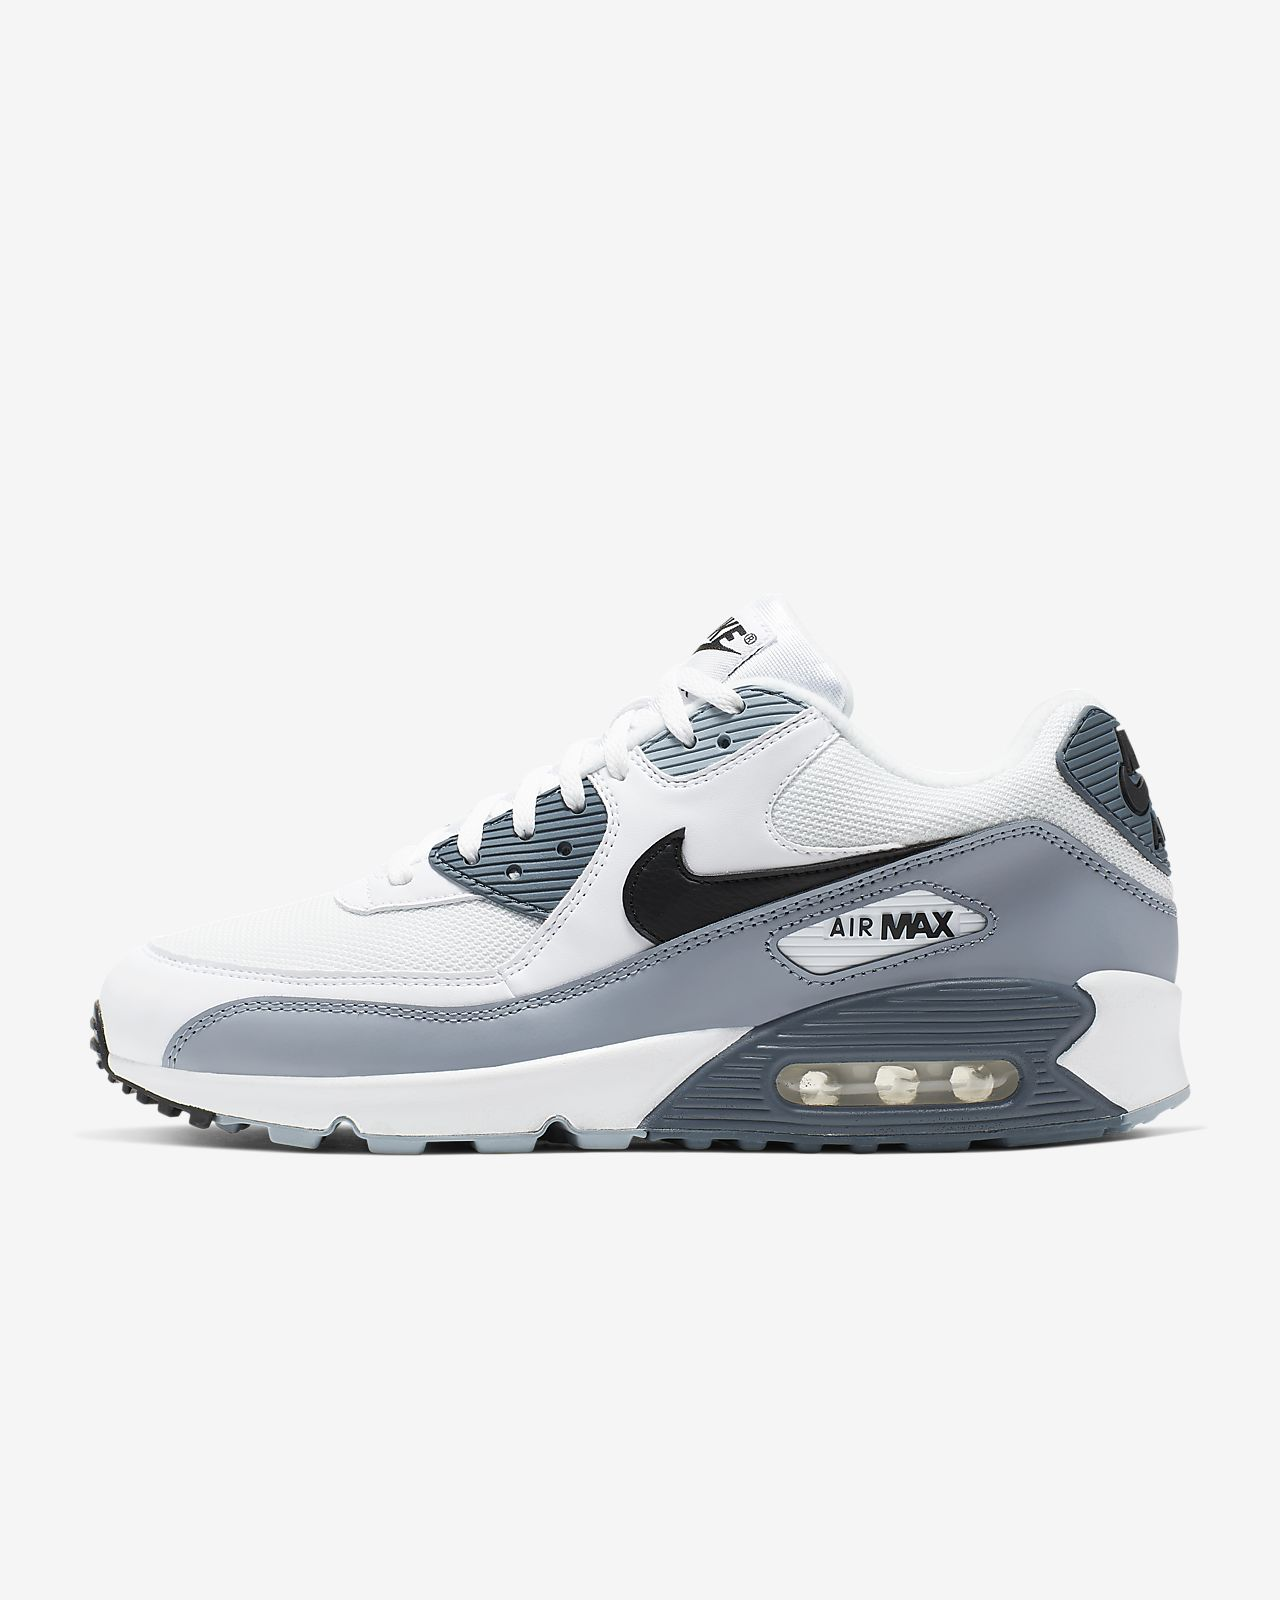 reputable site 1b96f 939c7 Nike Air Max 90 Essential